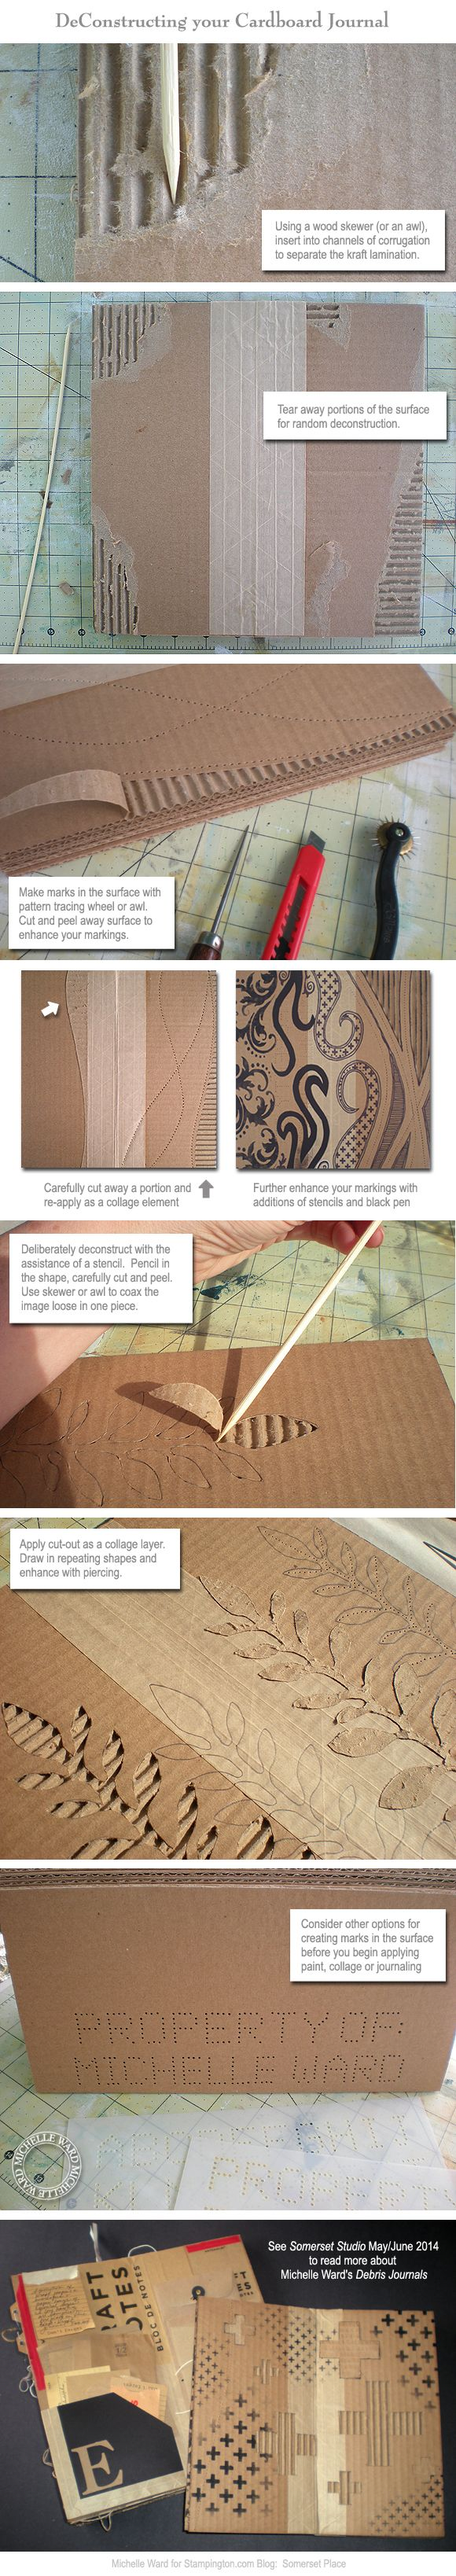 MKW Cardboard Journal Tutorial 2 http://stampington.com/blog/index.php/2014/05/29/upcycled-cardboard-journal-guest-artist-michelle-ward/